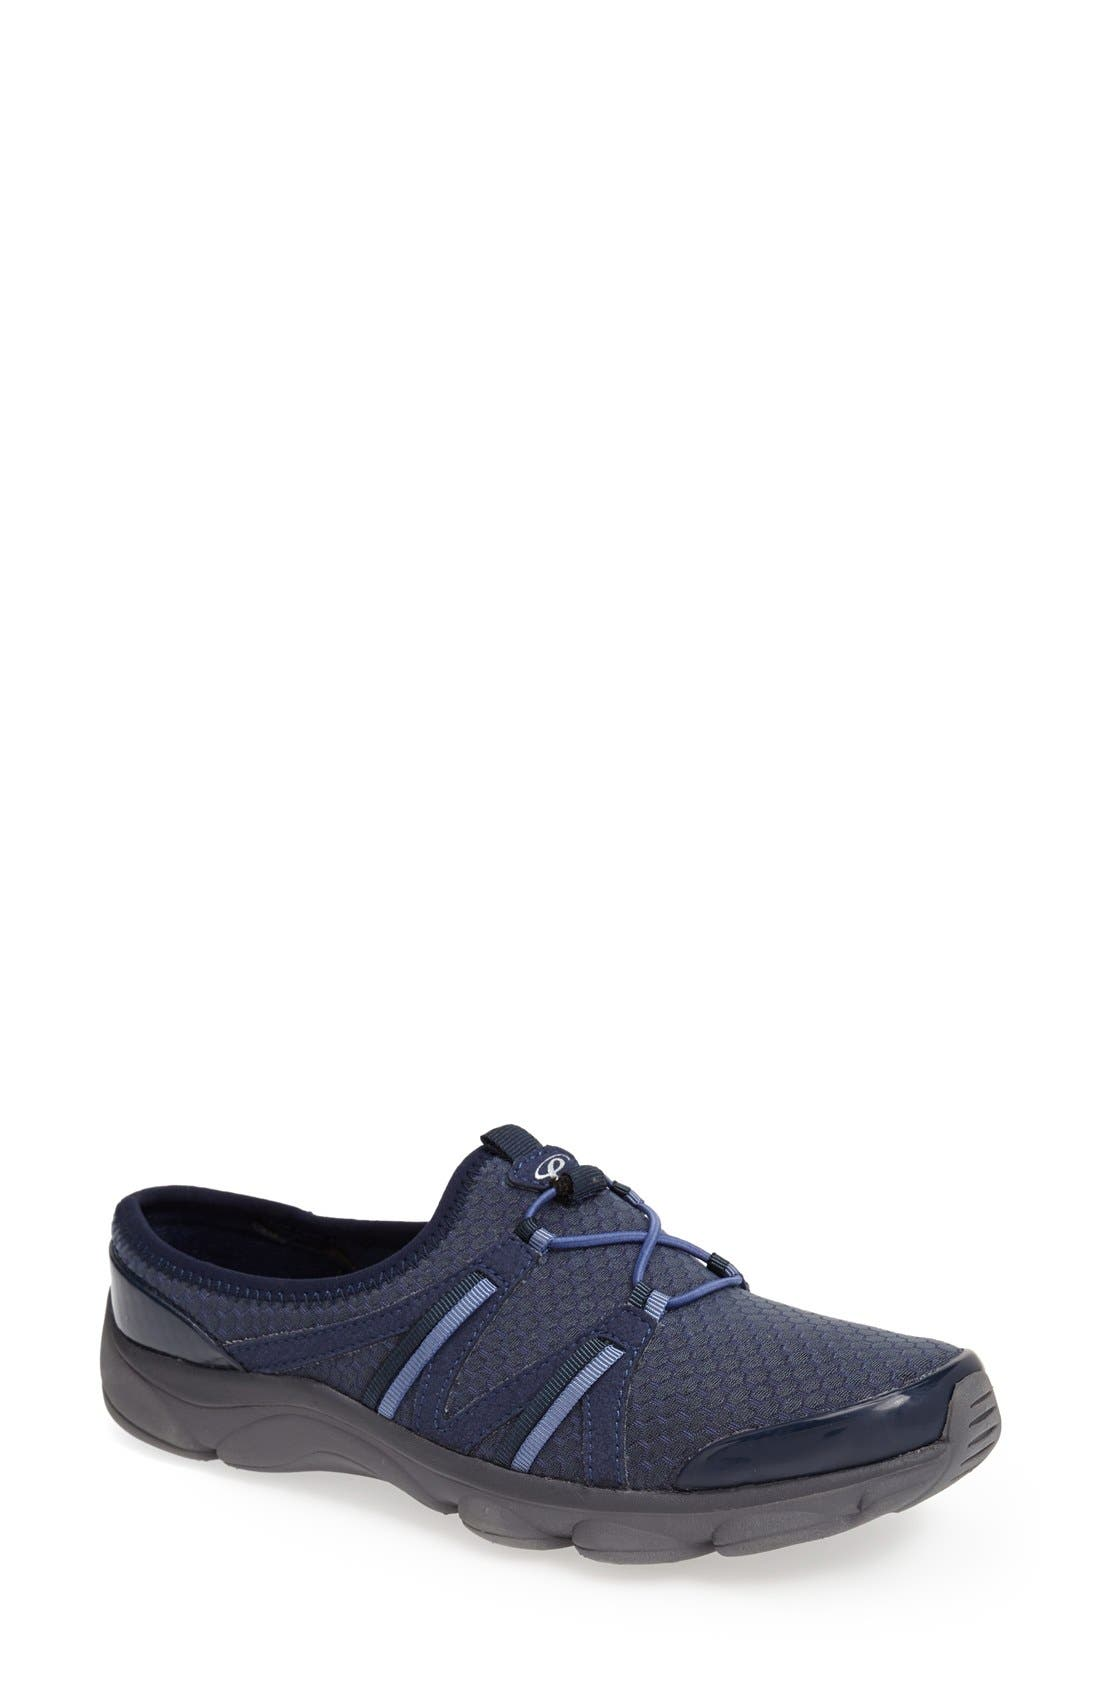 Alternate Image 1 Selected - Easy Spirit 'e360 - Rich' Slip-On Sneaker (Women)